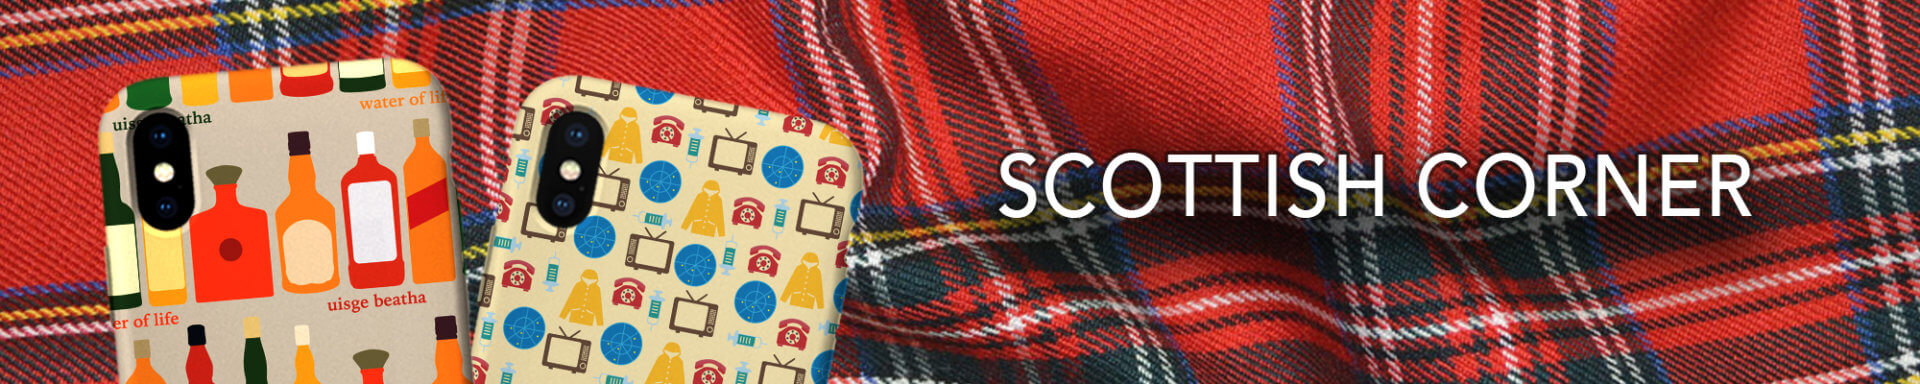 Scottish Corner Phone Cases